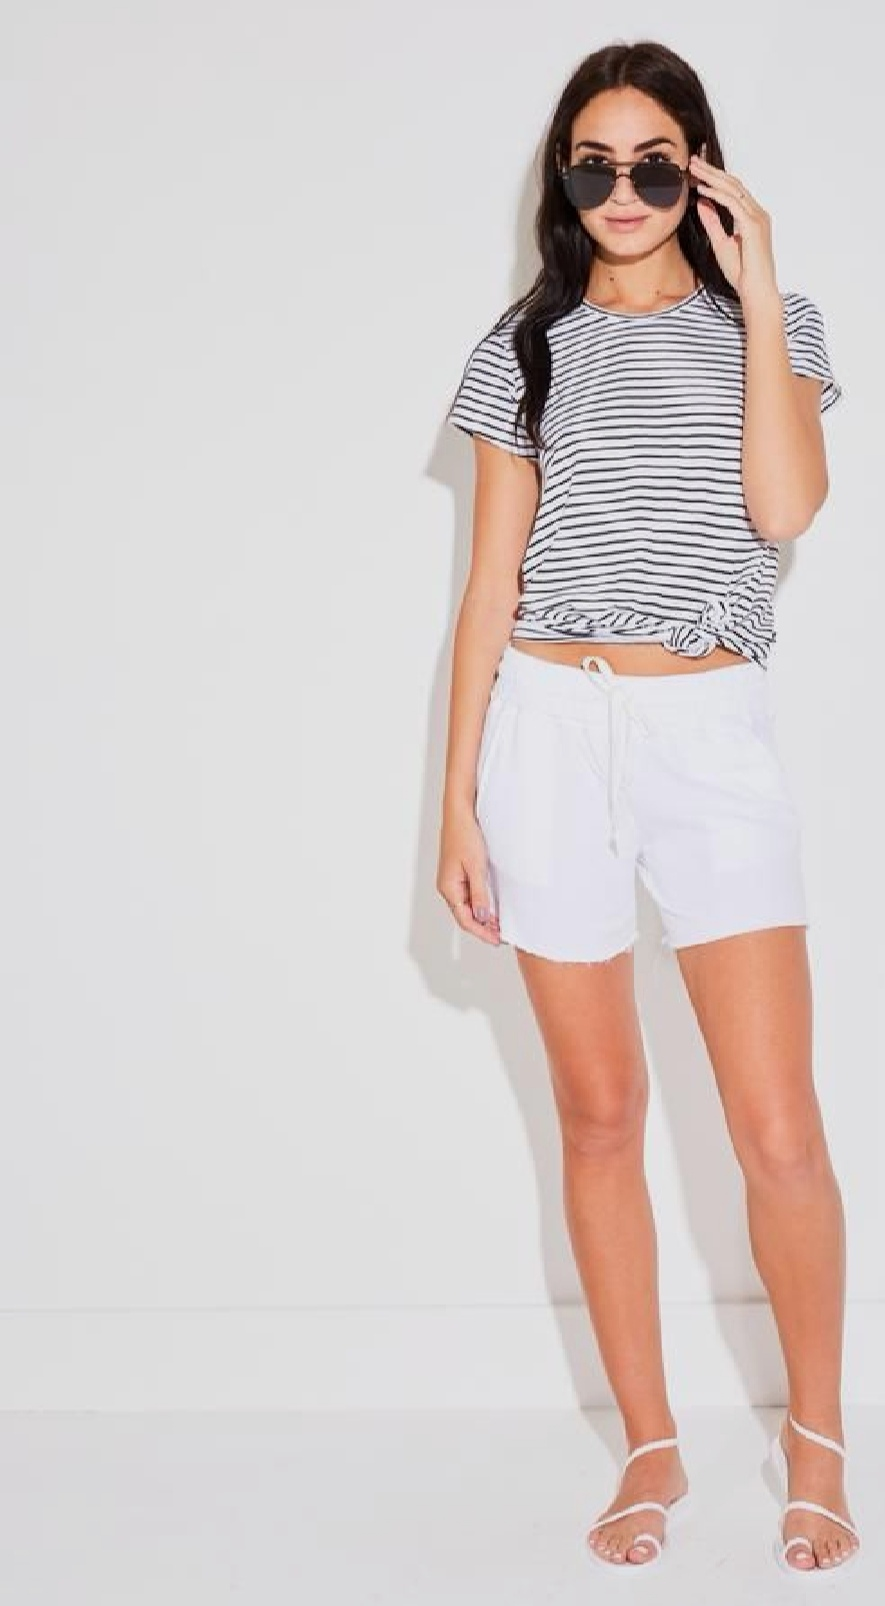 sew a pair of shorts -